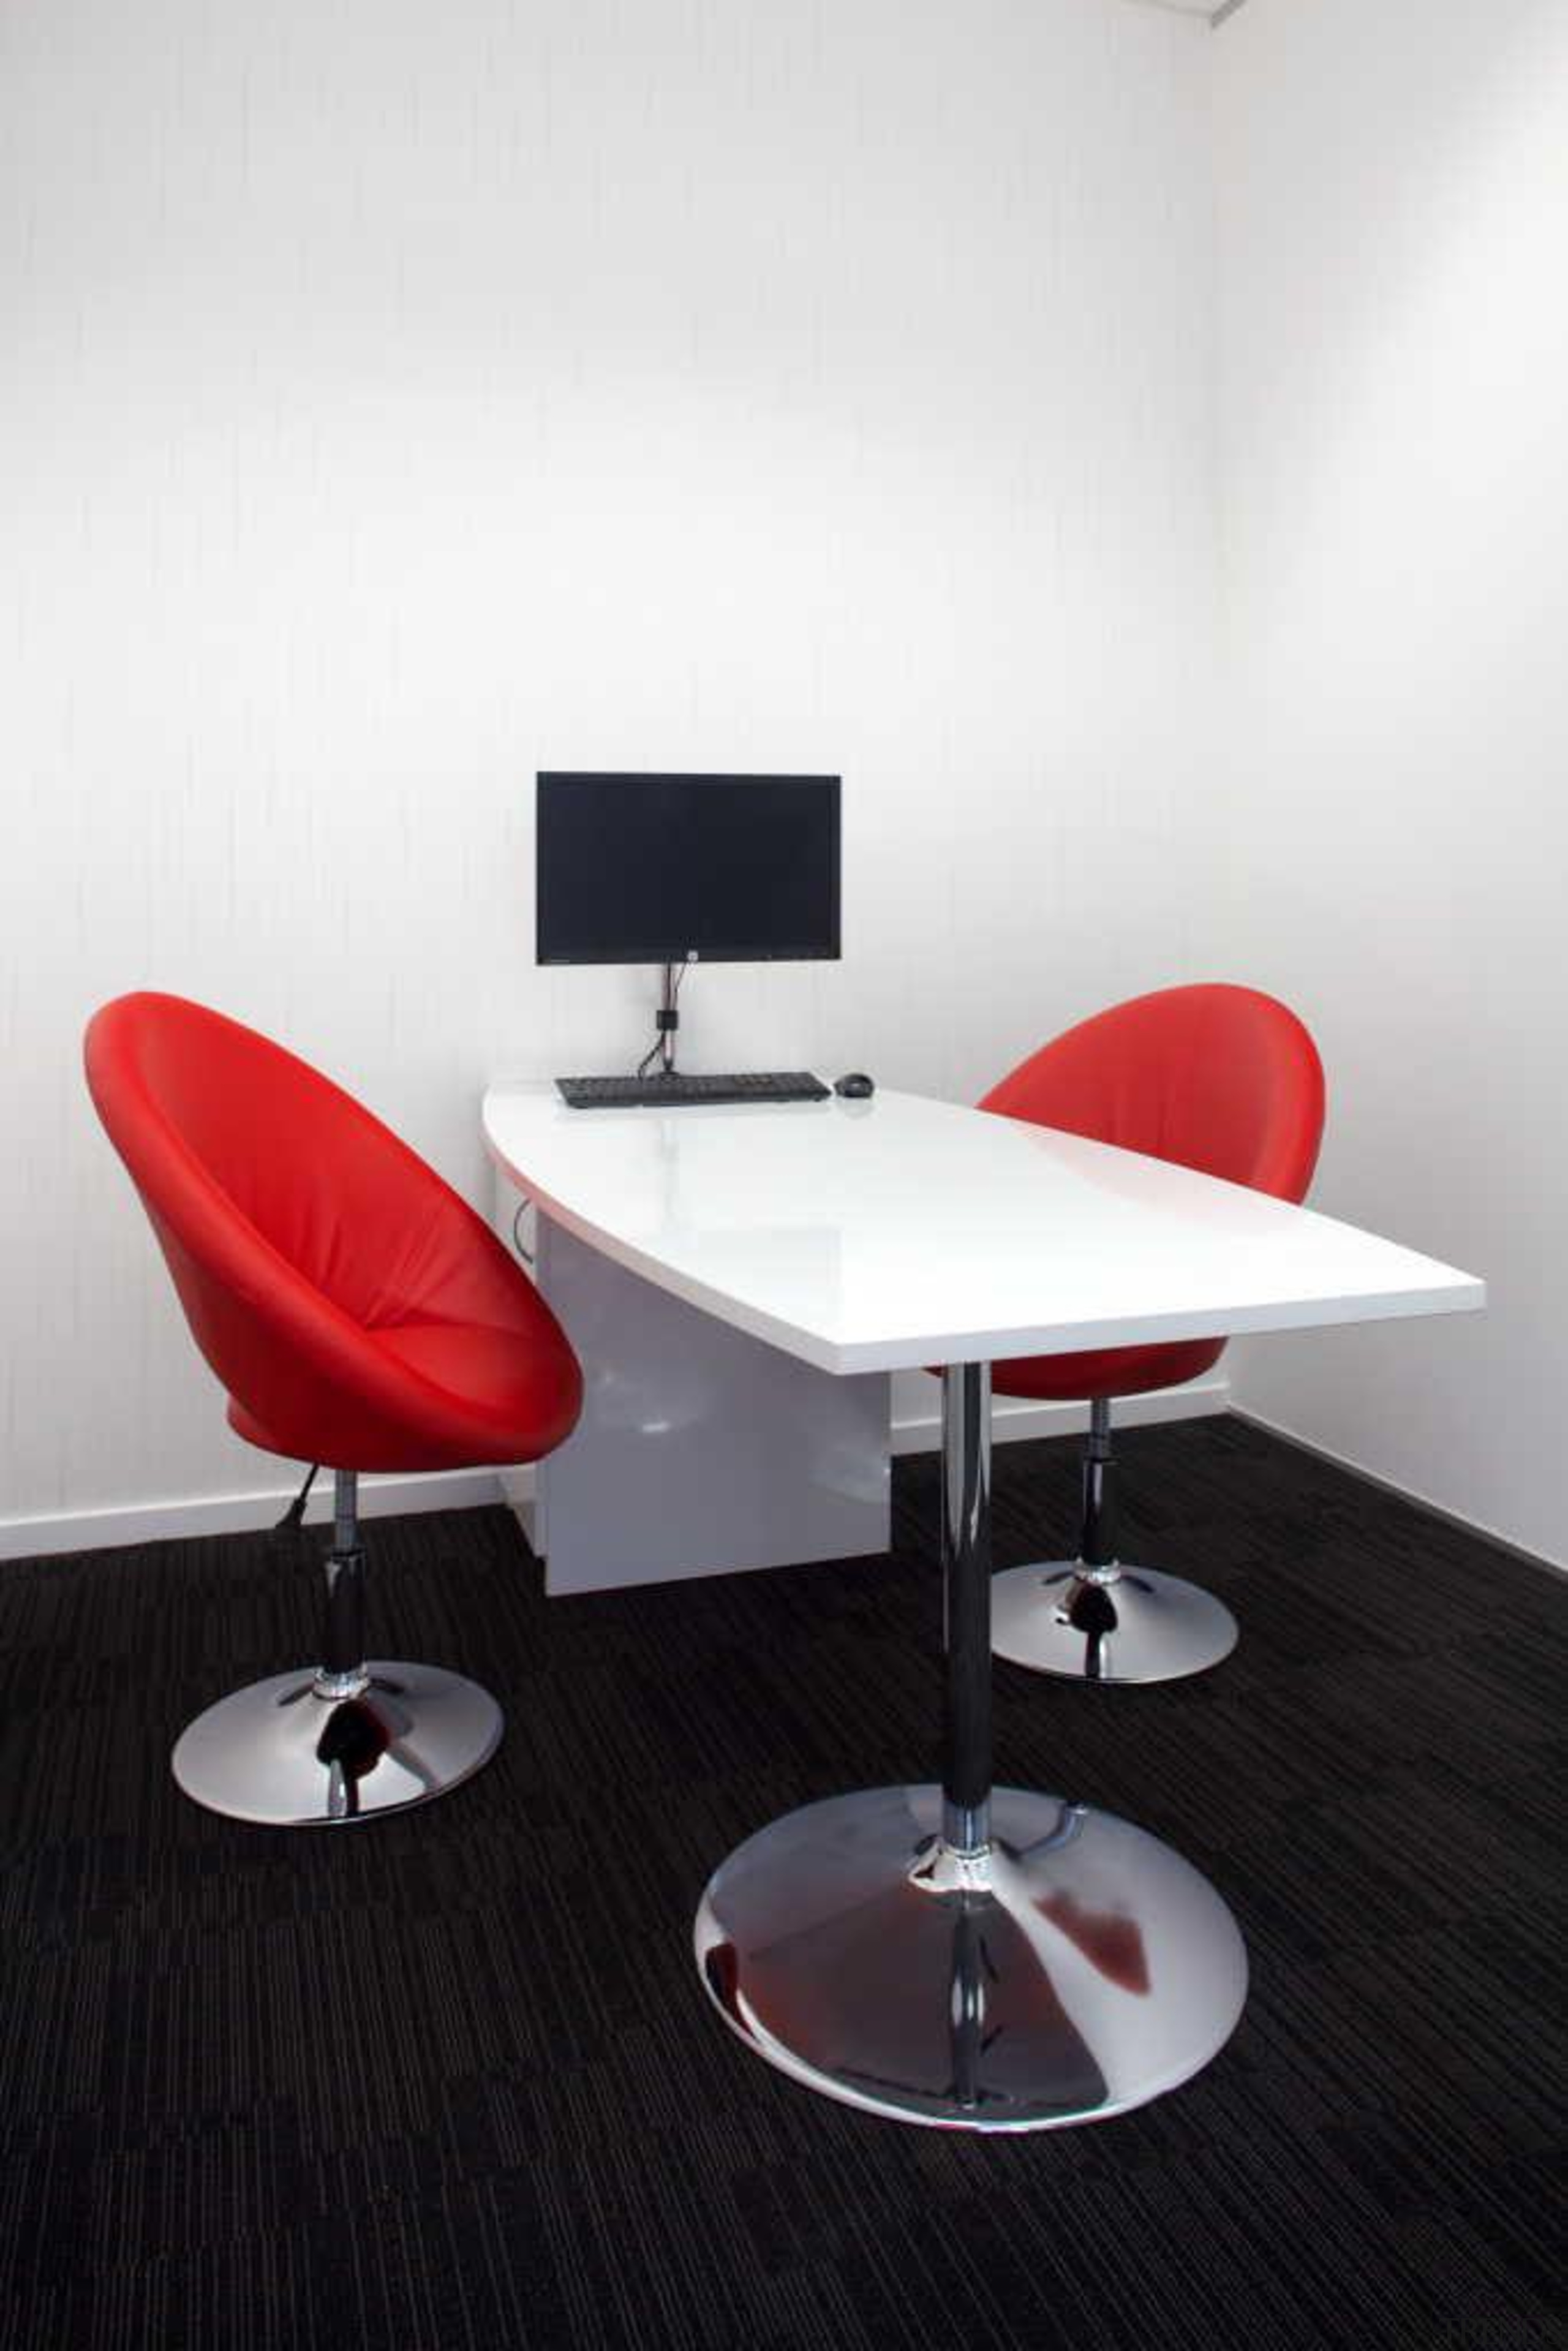 Meeting tables in the interview rooms at DKW angle, chair, furniture, interior design, office, office chair, product, product design, table, white, black